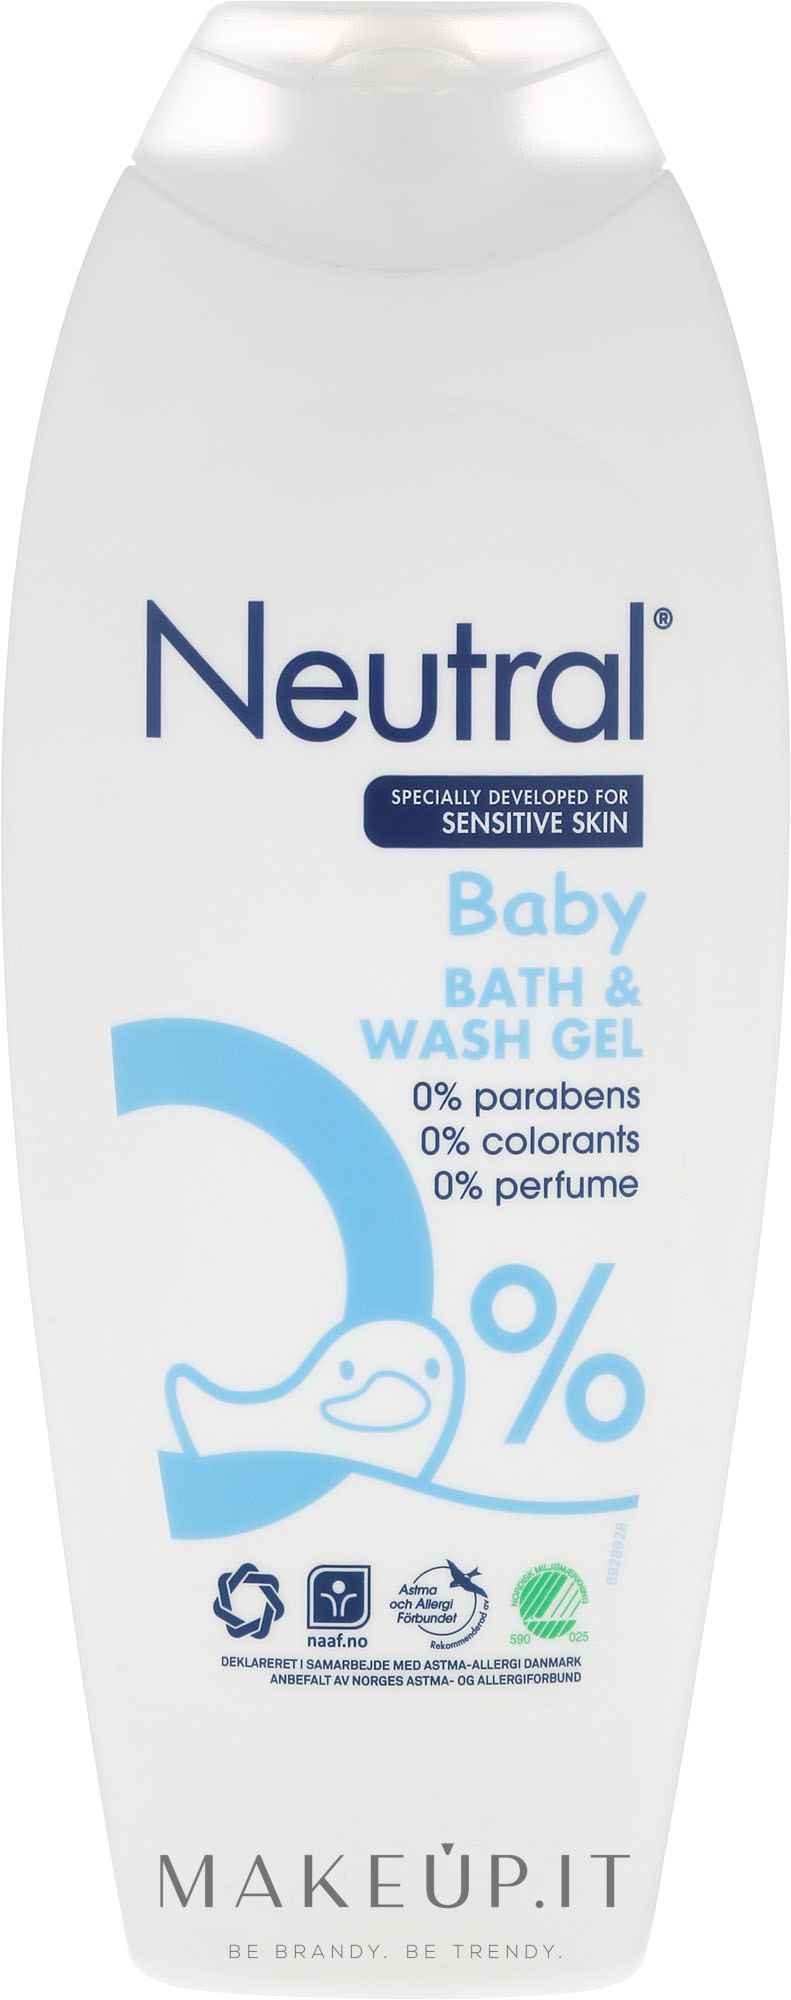 Gel da bagno per bambini - Neutral Baby Bath & Wash Gel — foto 250 ml